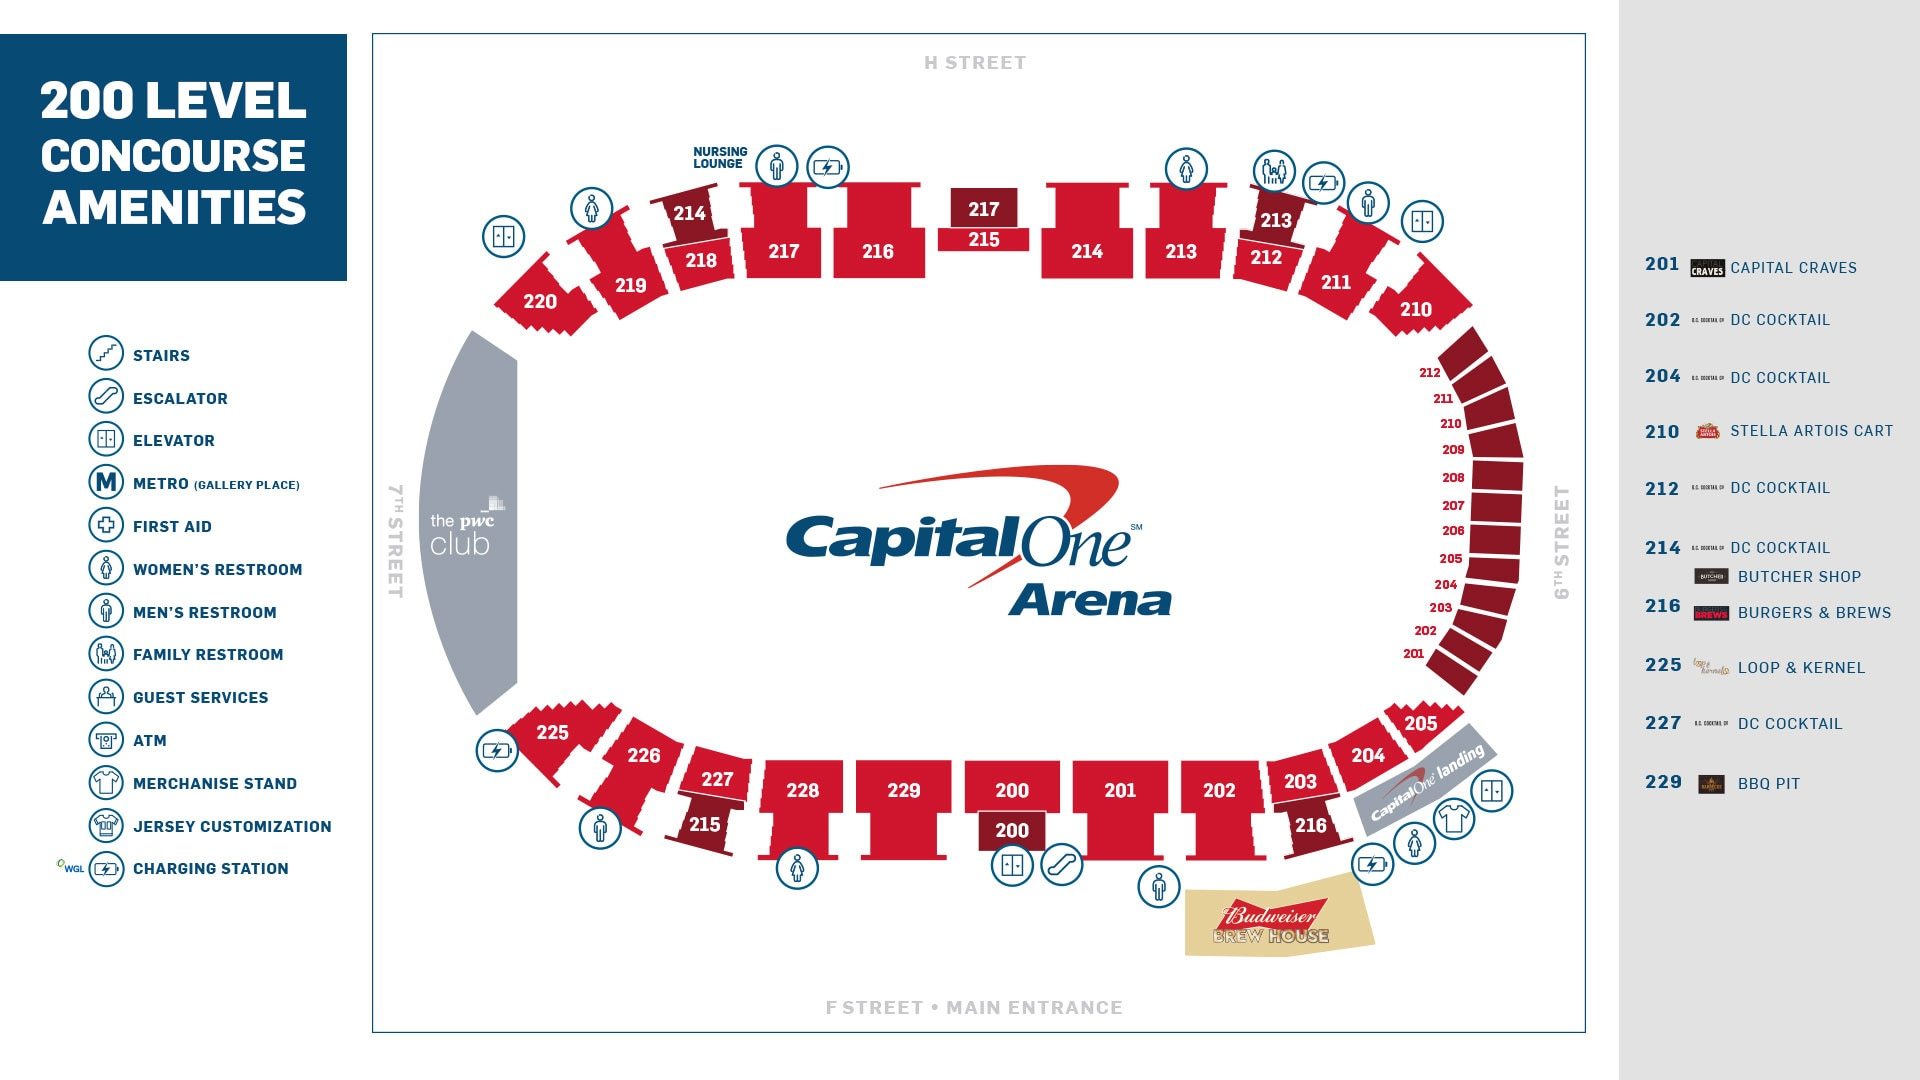 Food & Beverage Options | Capital One Arena